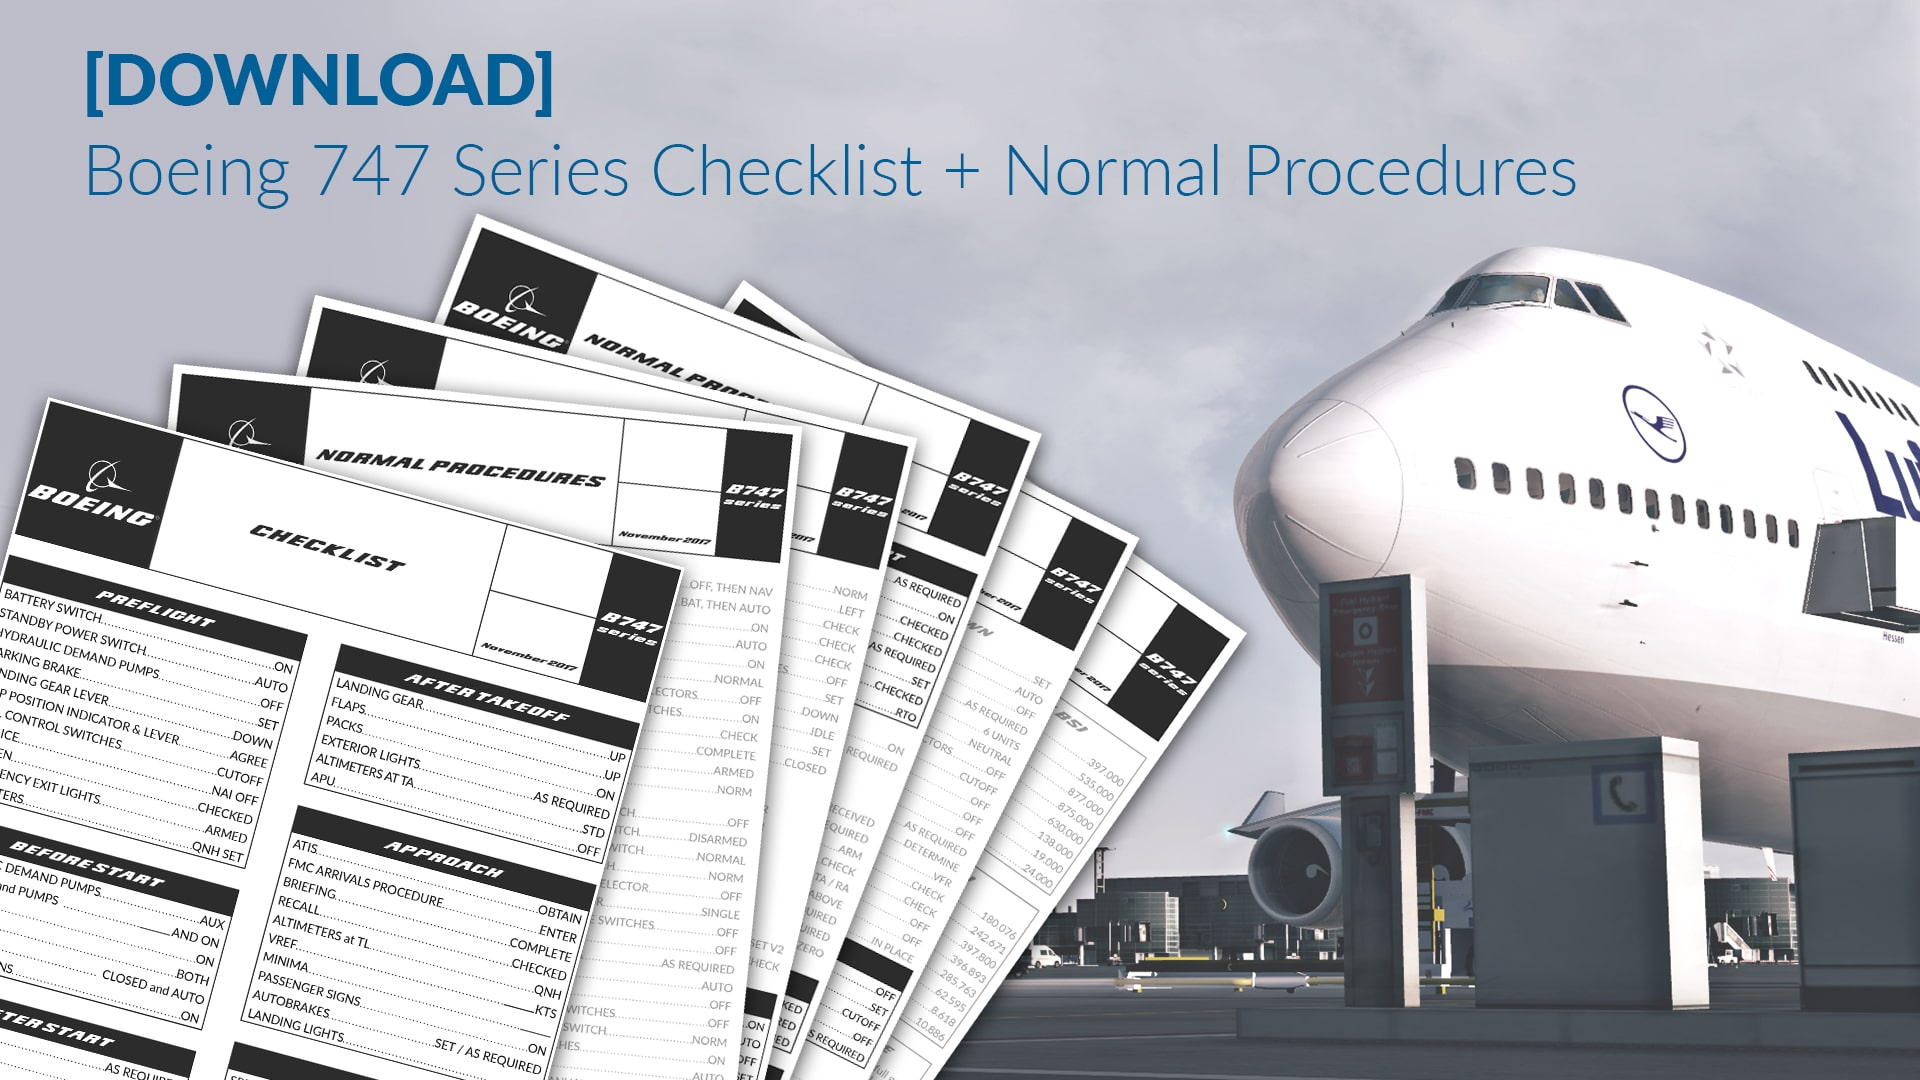 [DOWNLOAD] Boeing 747 Series Checklist – Normal Procedures